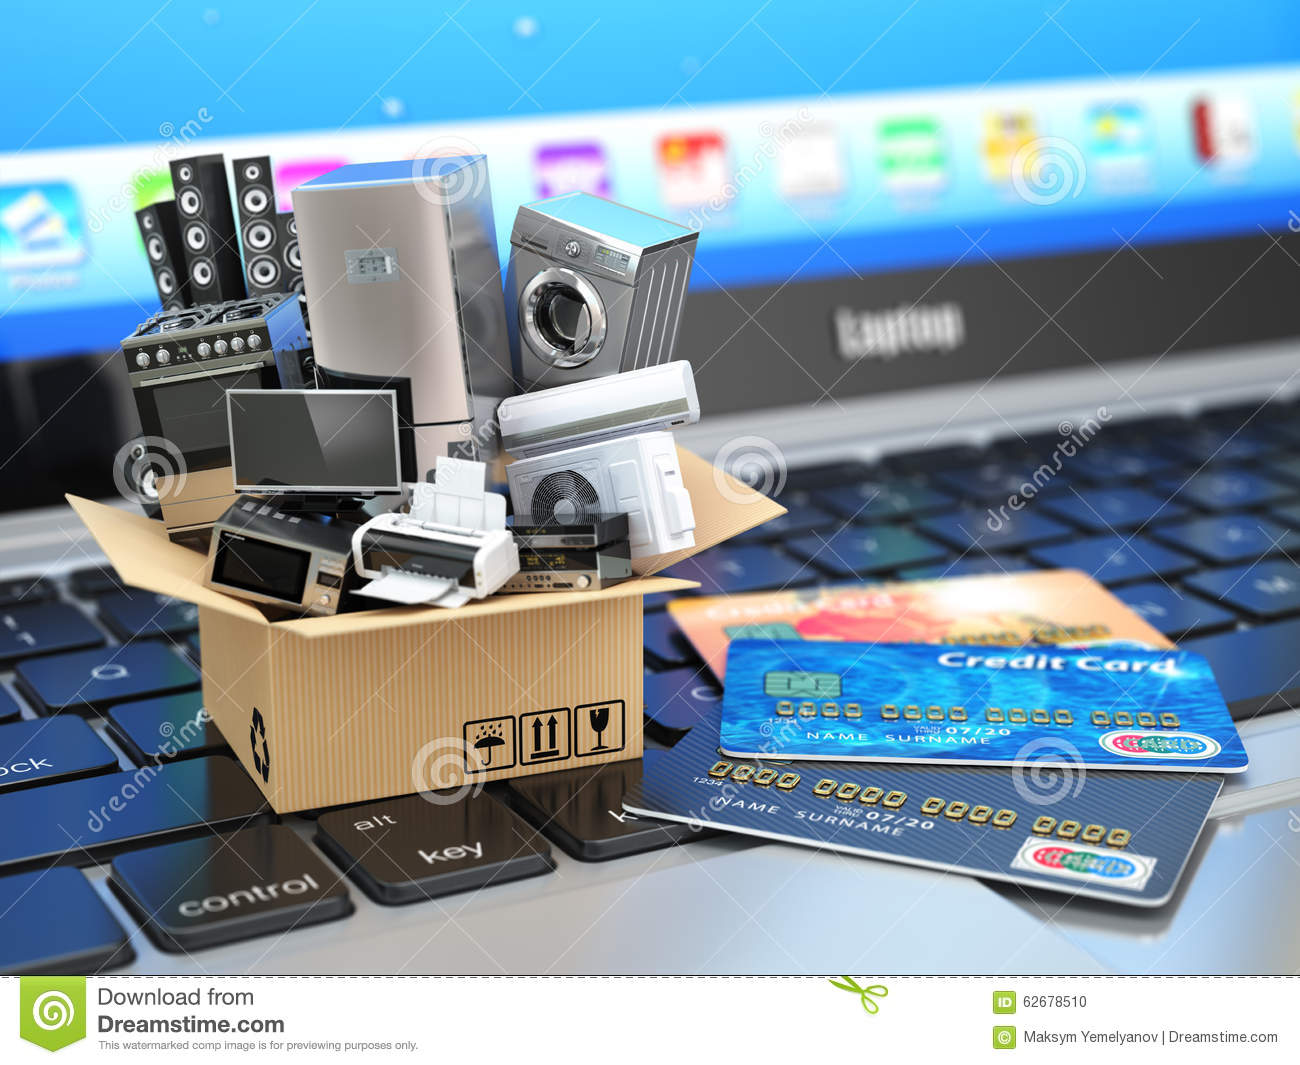 E-commerce or online shopping or delivery concept.